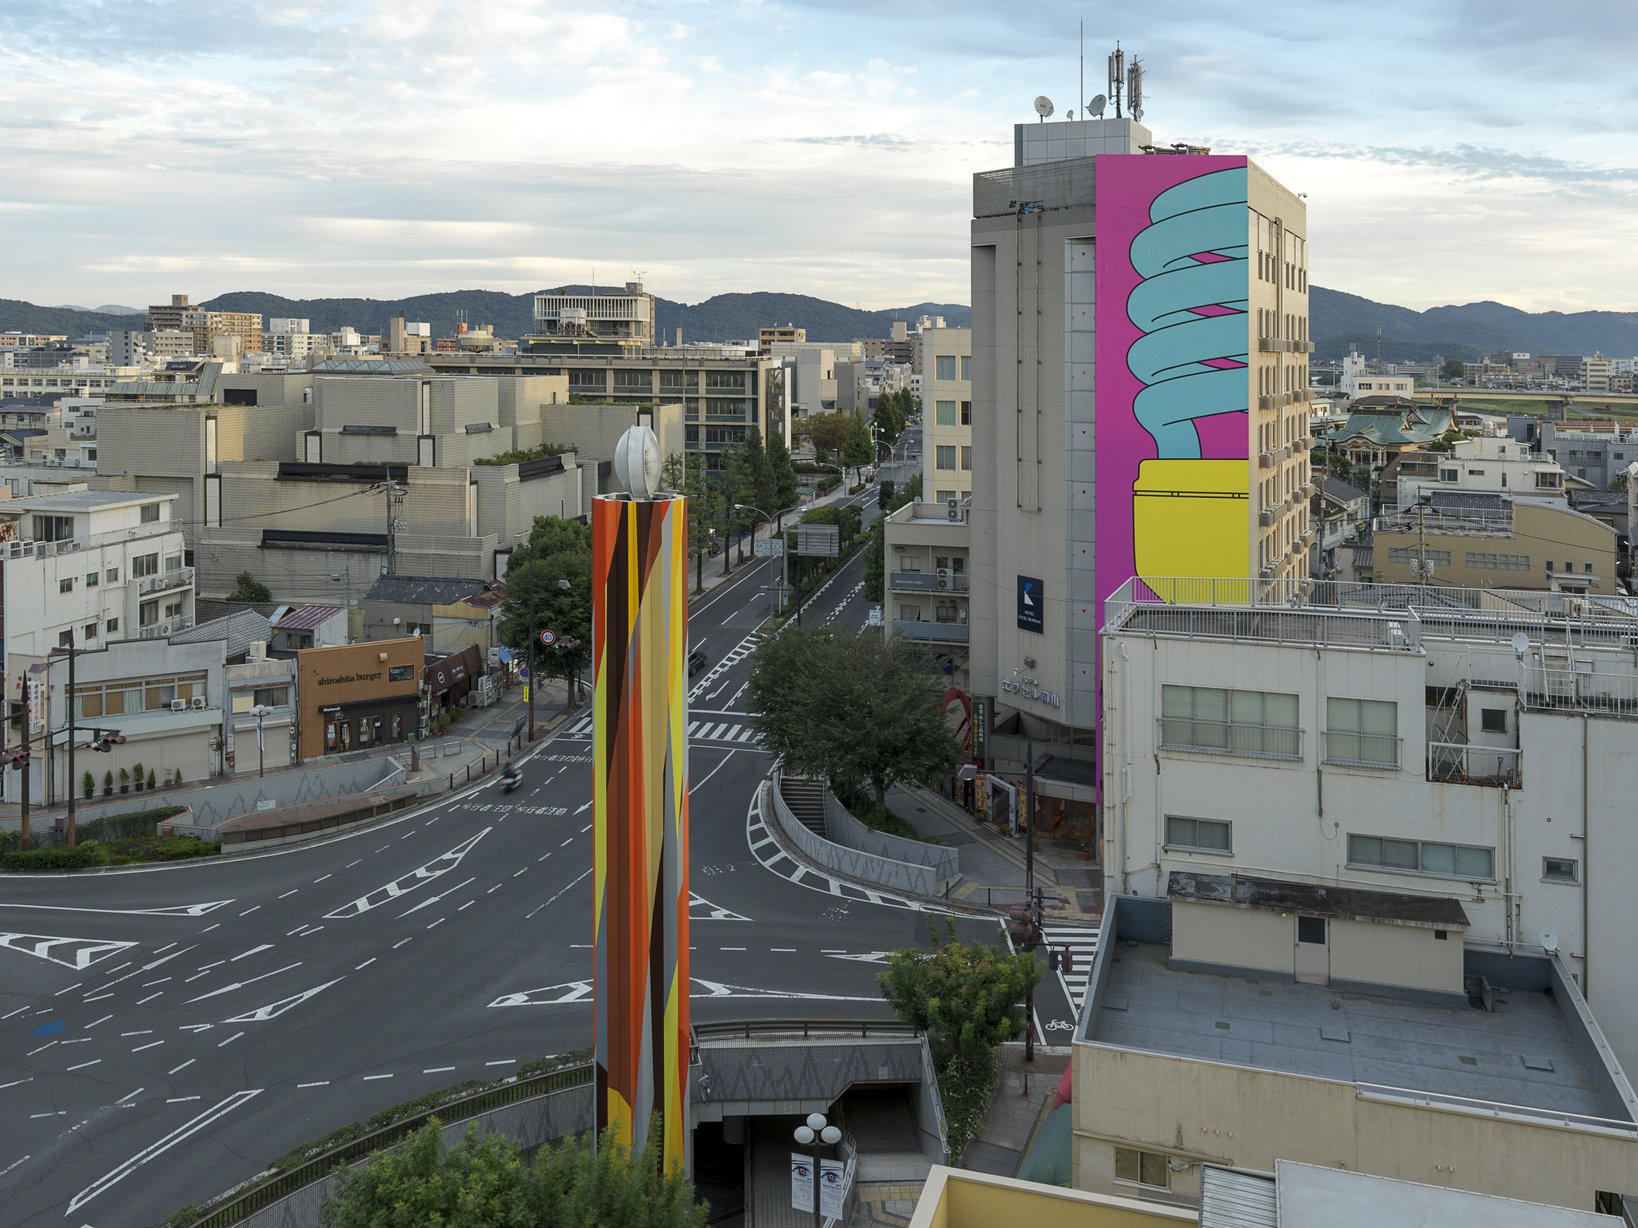 Michael Craig-Martin Beacon 2016 Digital print on vinyl Commissioned by Okayama Art Summit Executive Committee, Japan Supported by Okasan Securities Co., Ltd. Courtesy of the artist © Okayama Art Summit 2016  Photo: Yasushi Ichikawa